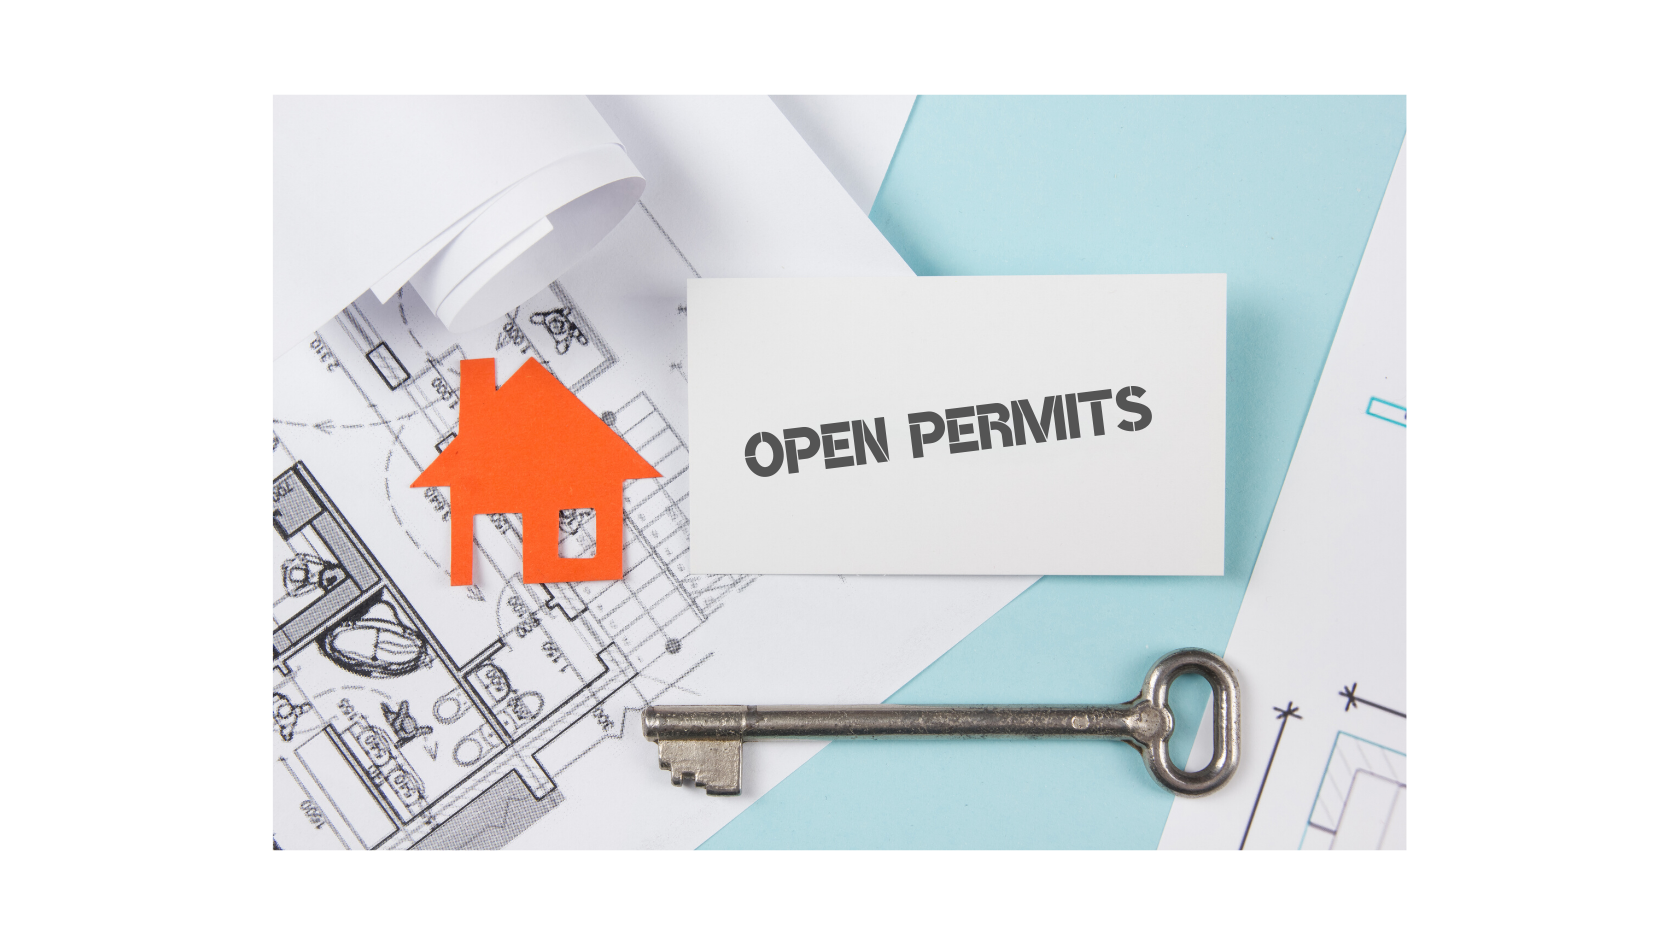 Reduced Delays Related to Open Permits in Real Estate Closings